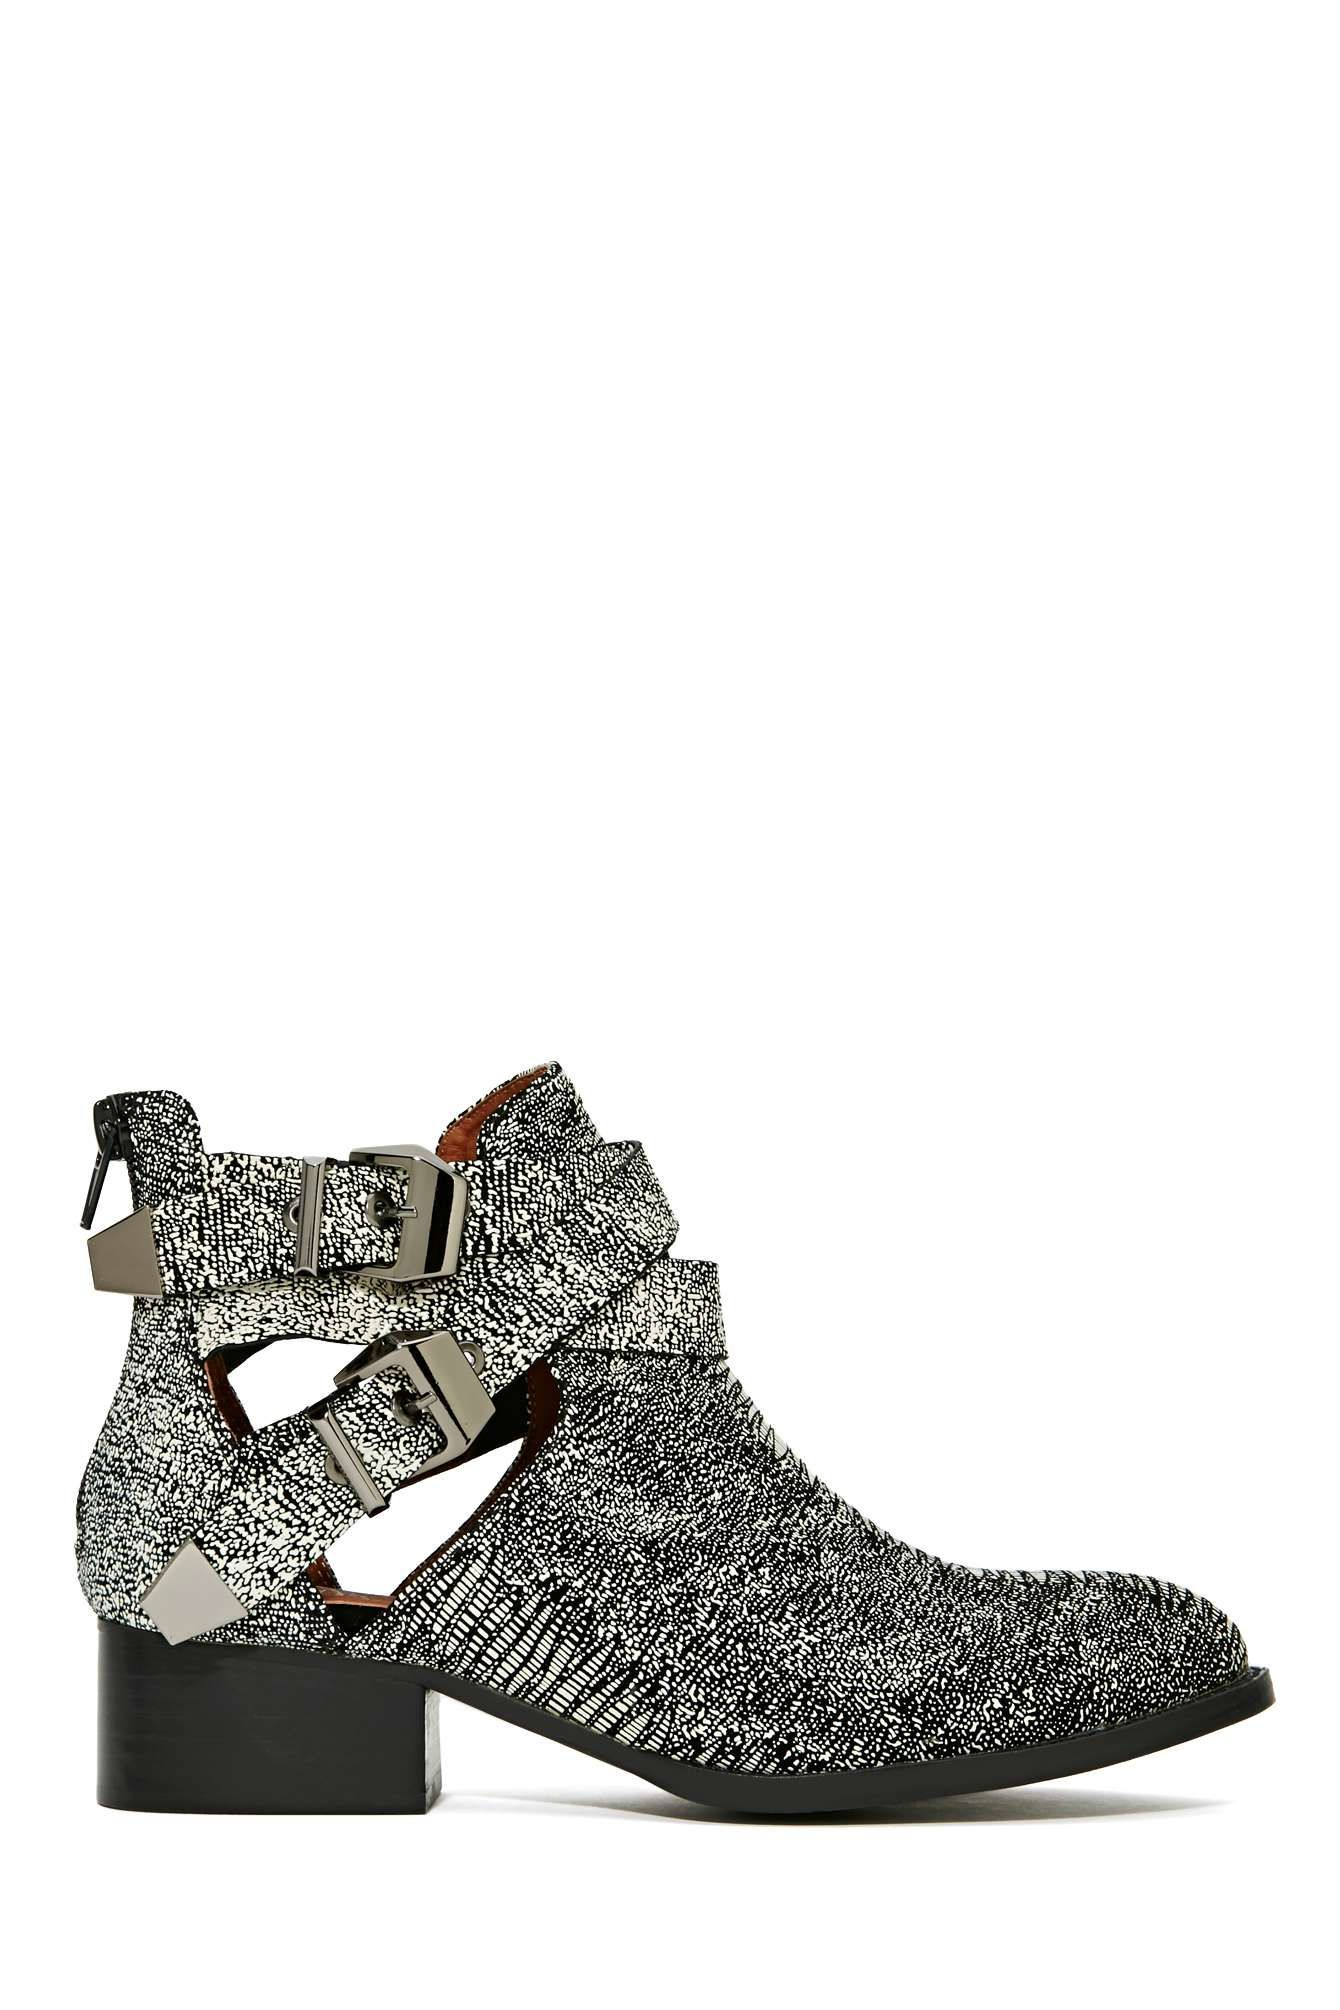 Jeffrey Campbell Everly Cutout Boot - Lizard | Shop Shoes at Nasty Gal